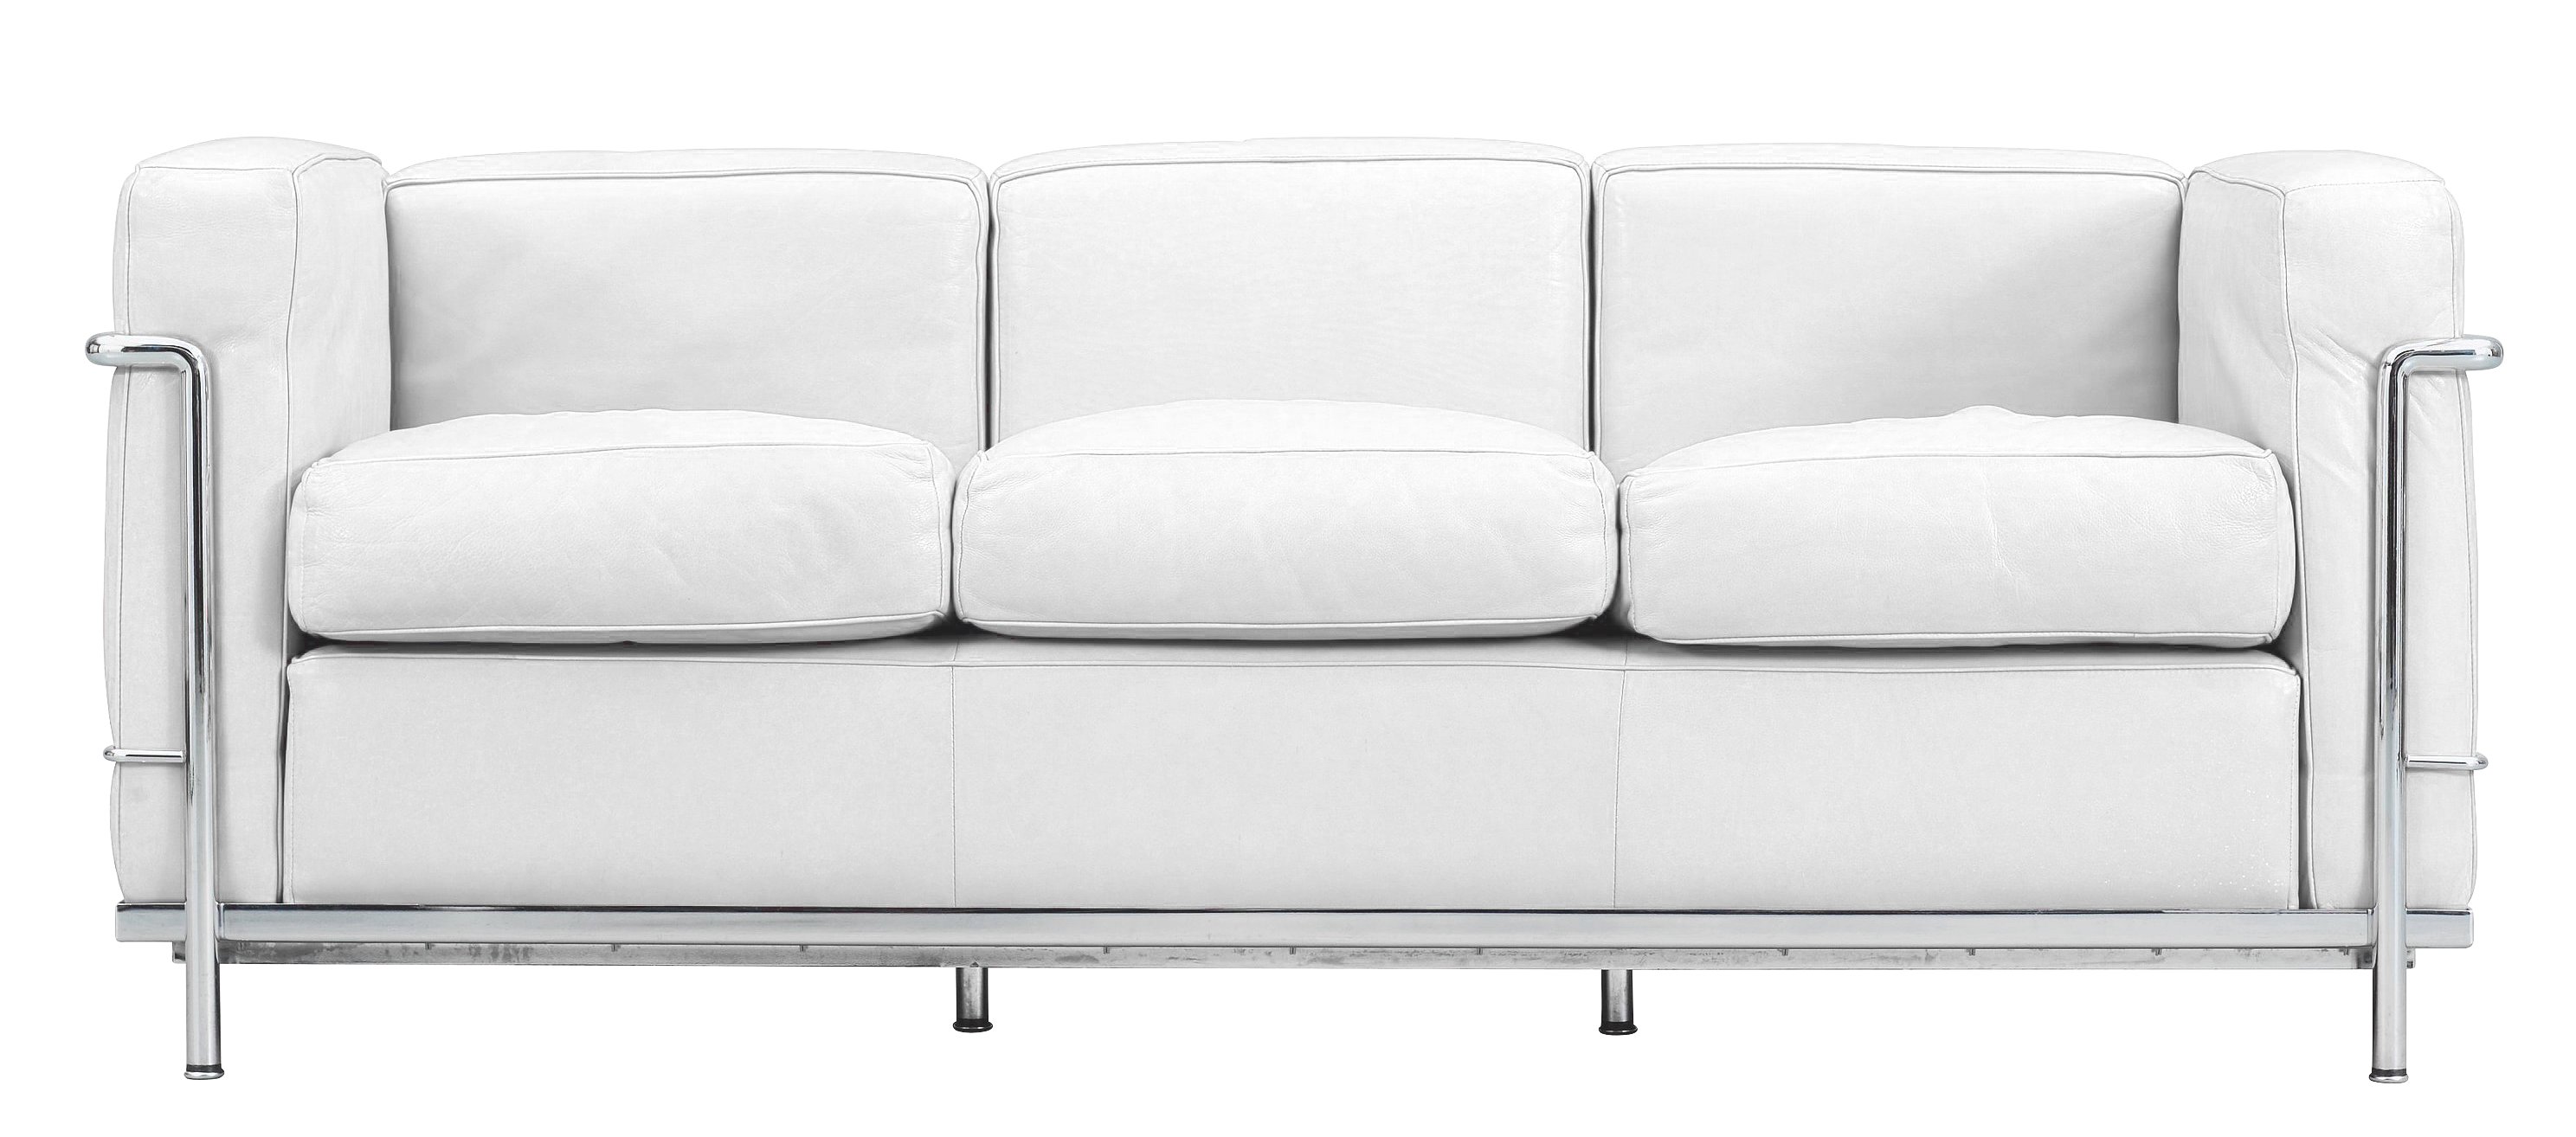 White leather couch and. Dishwasher clipart job chart